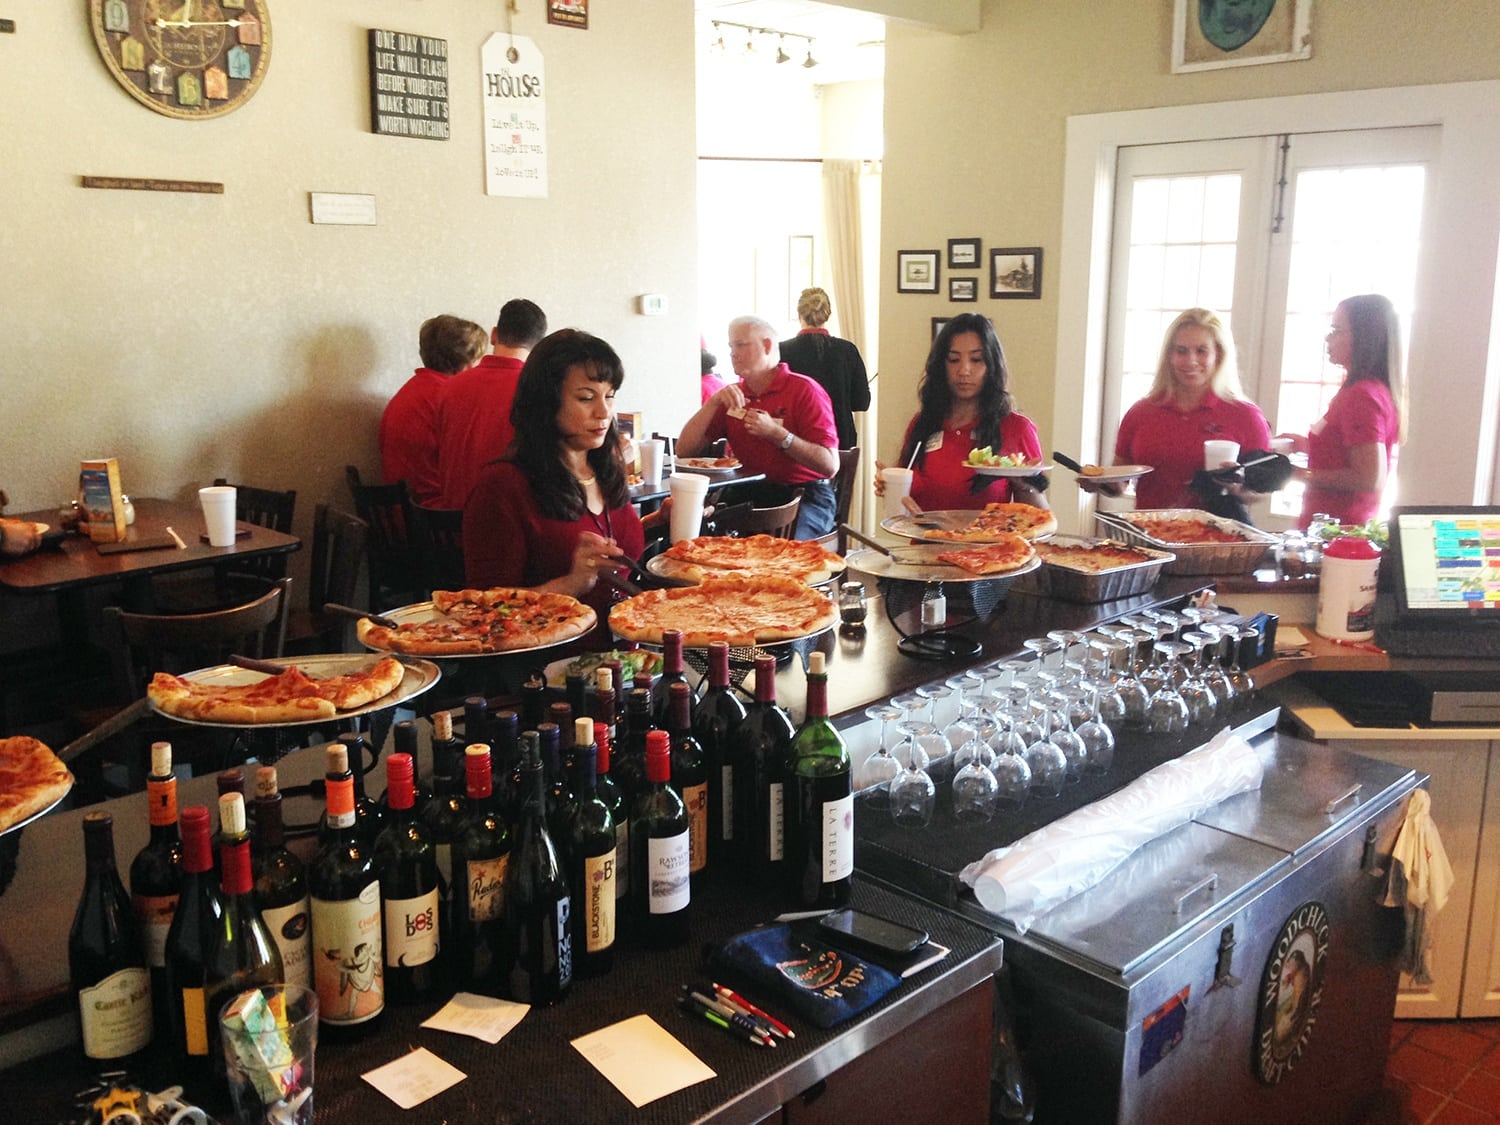 Catering Broadway Pizza Bar - Reach